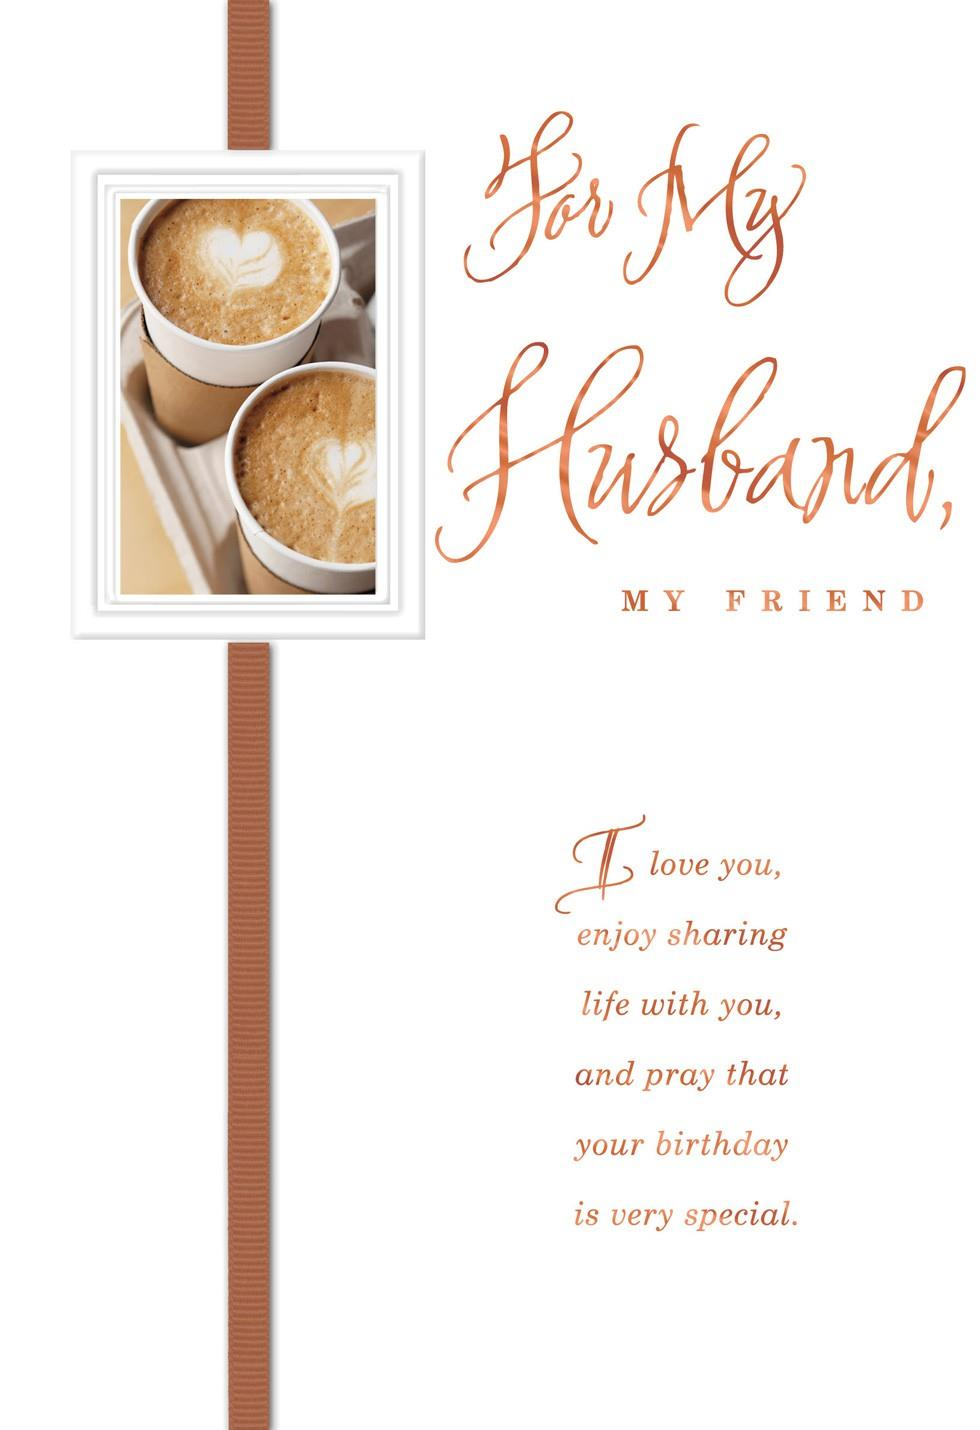 My Husband My Friend Religious Birthday Card Greeting Cards Hallmark